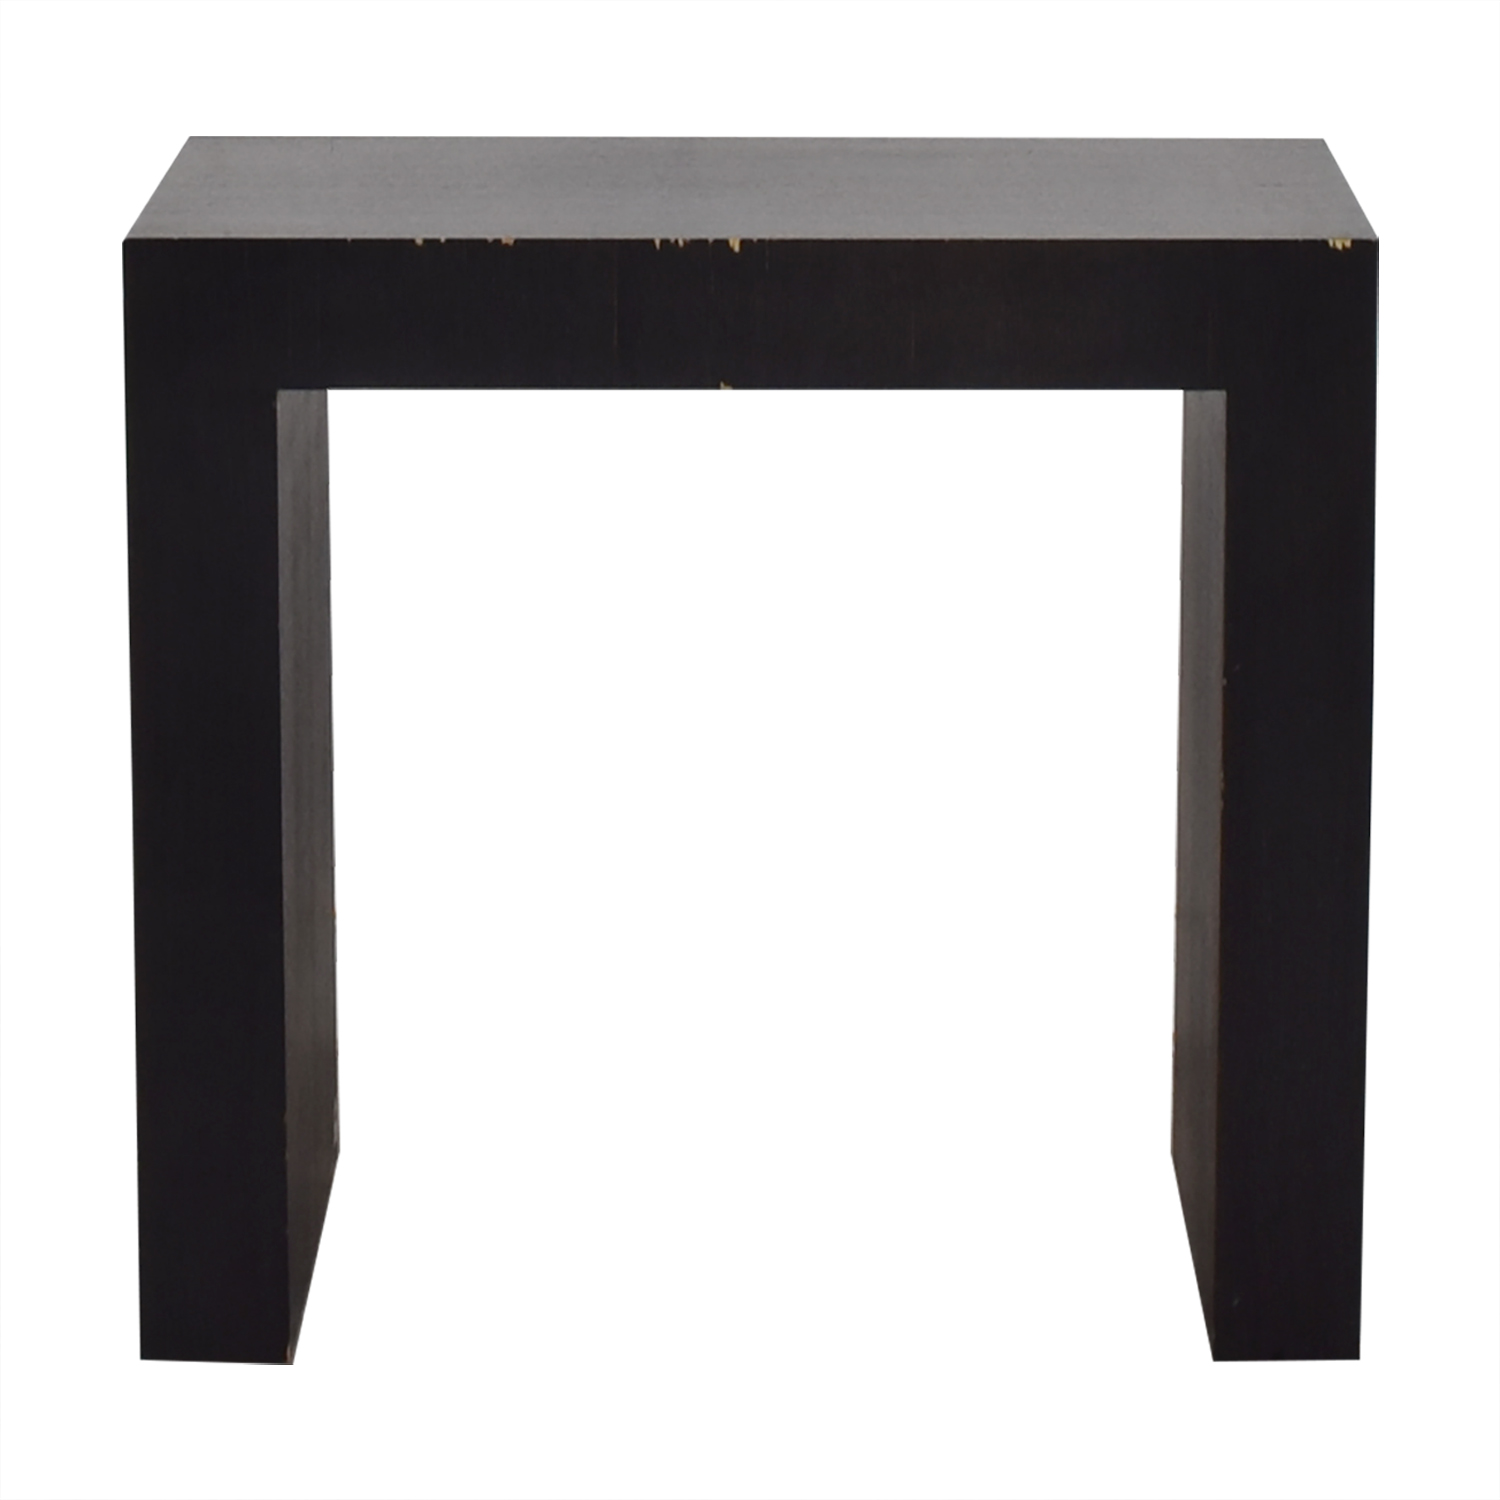 Armani Casa Armani Casa Seine Console Table second hand